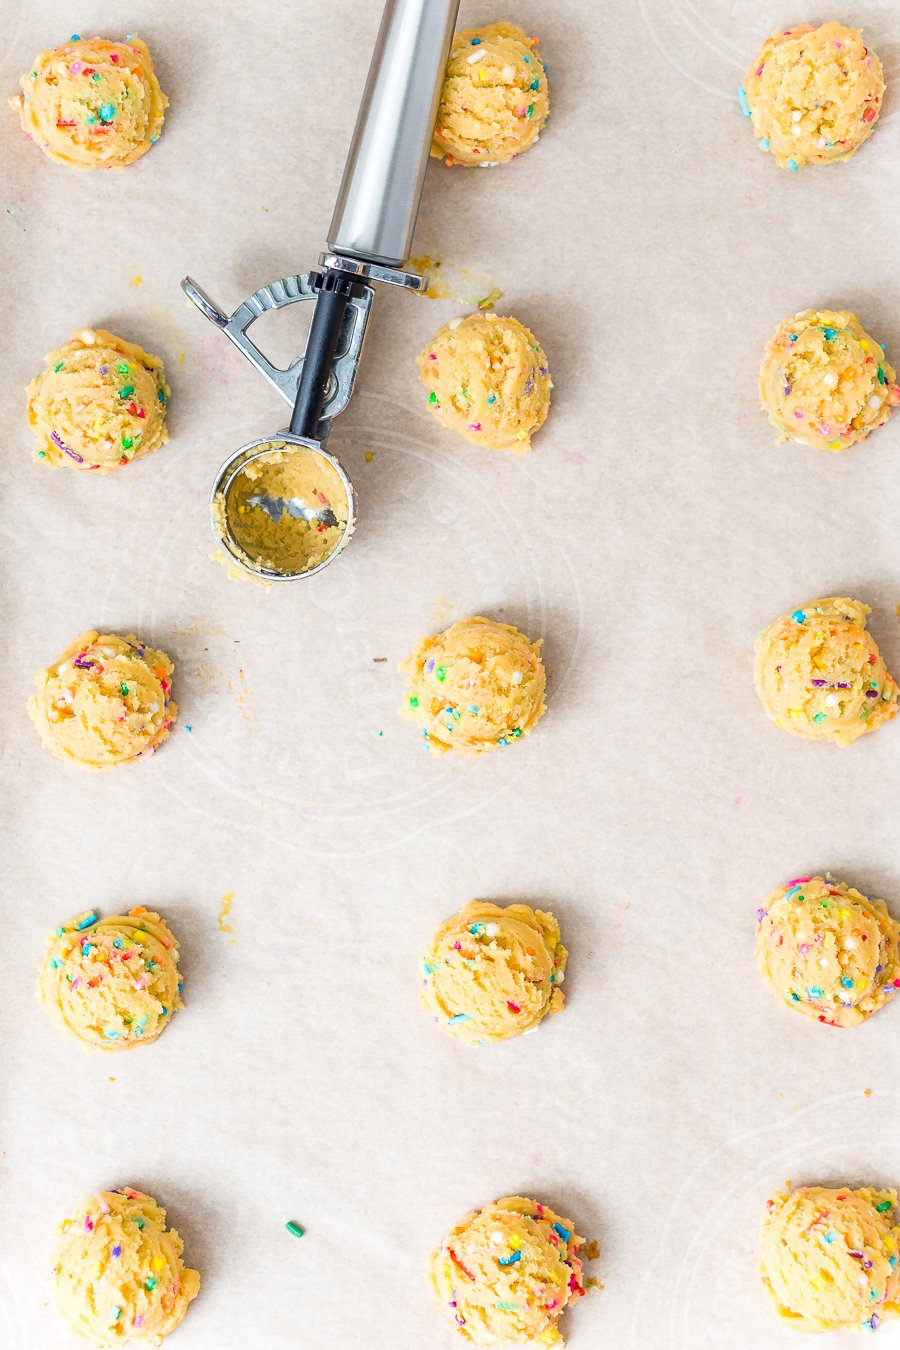 These Birthday Cake Pudding Cookies are sweet, chewy and loaded up with sprinkles. Tempting vanilla makes them the perfect alternative to cake, or you know, have both! I did!